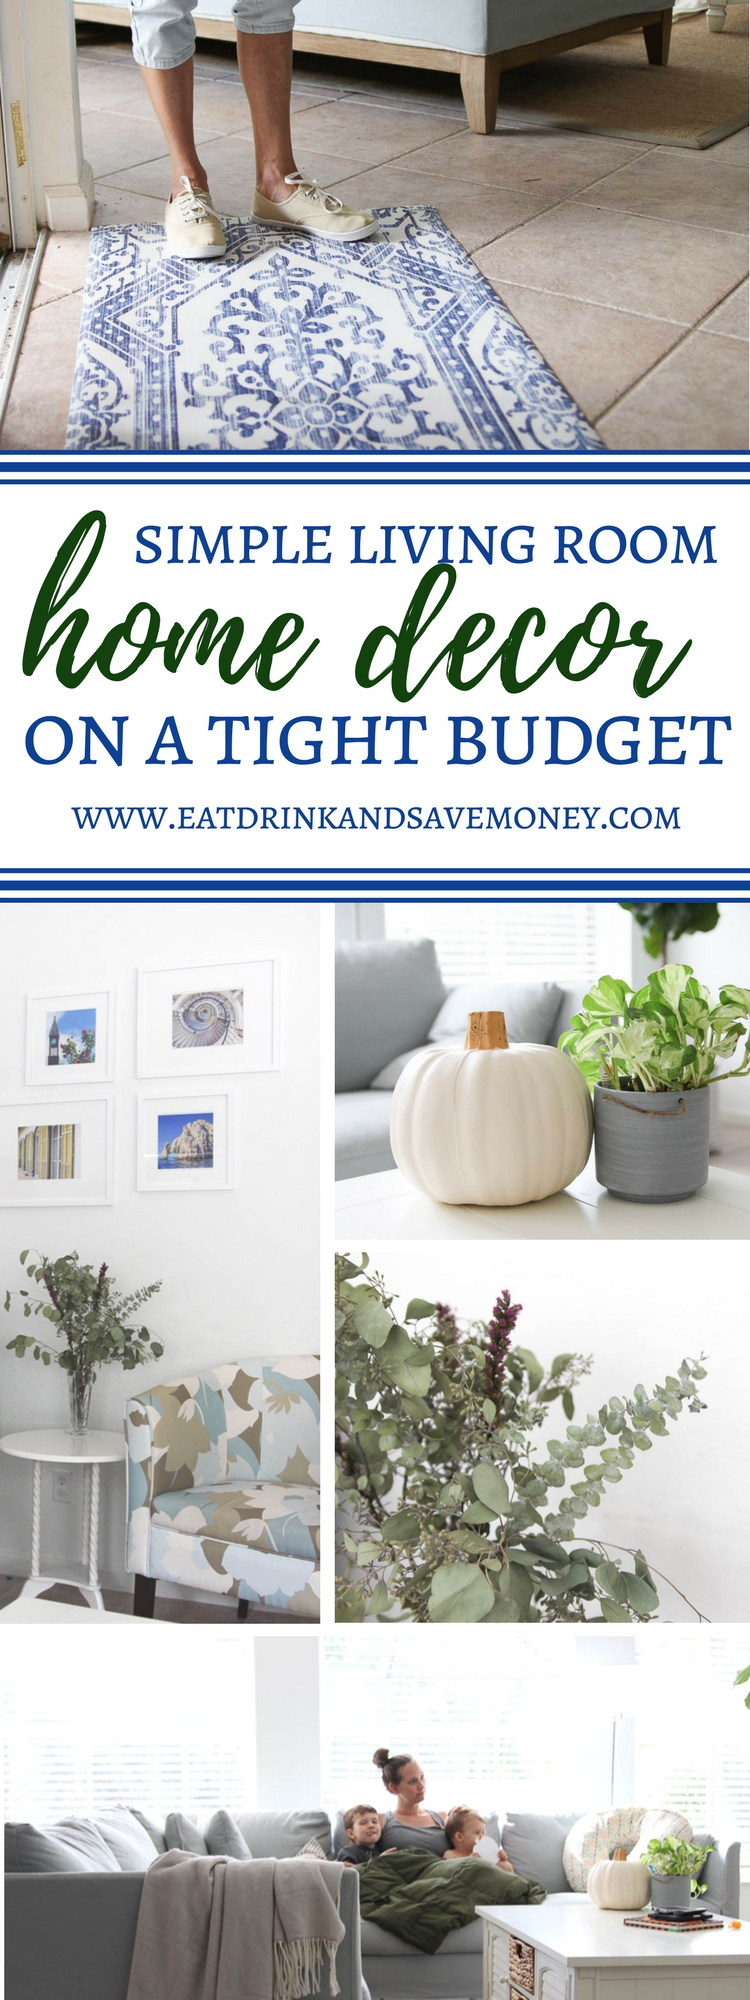 Simple living room home decor on a tight budget | budget home decor.